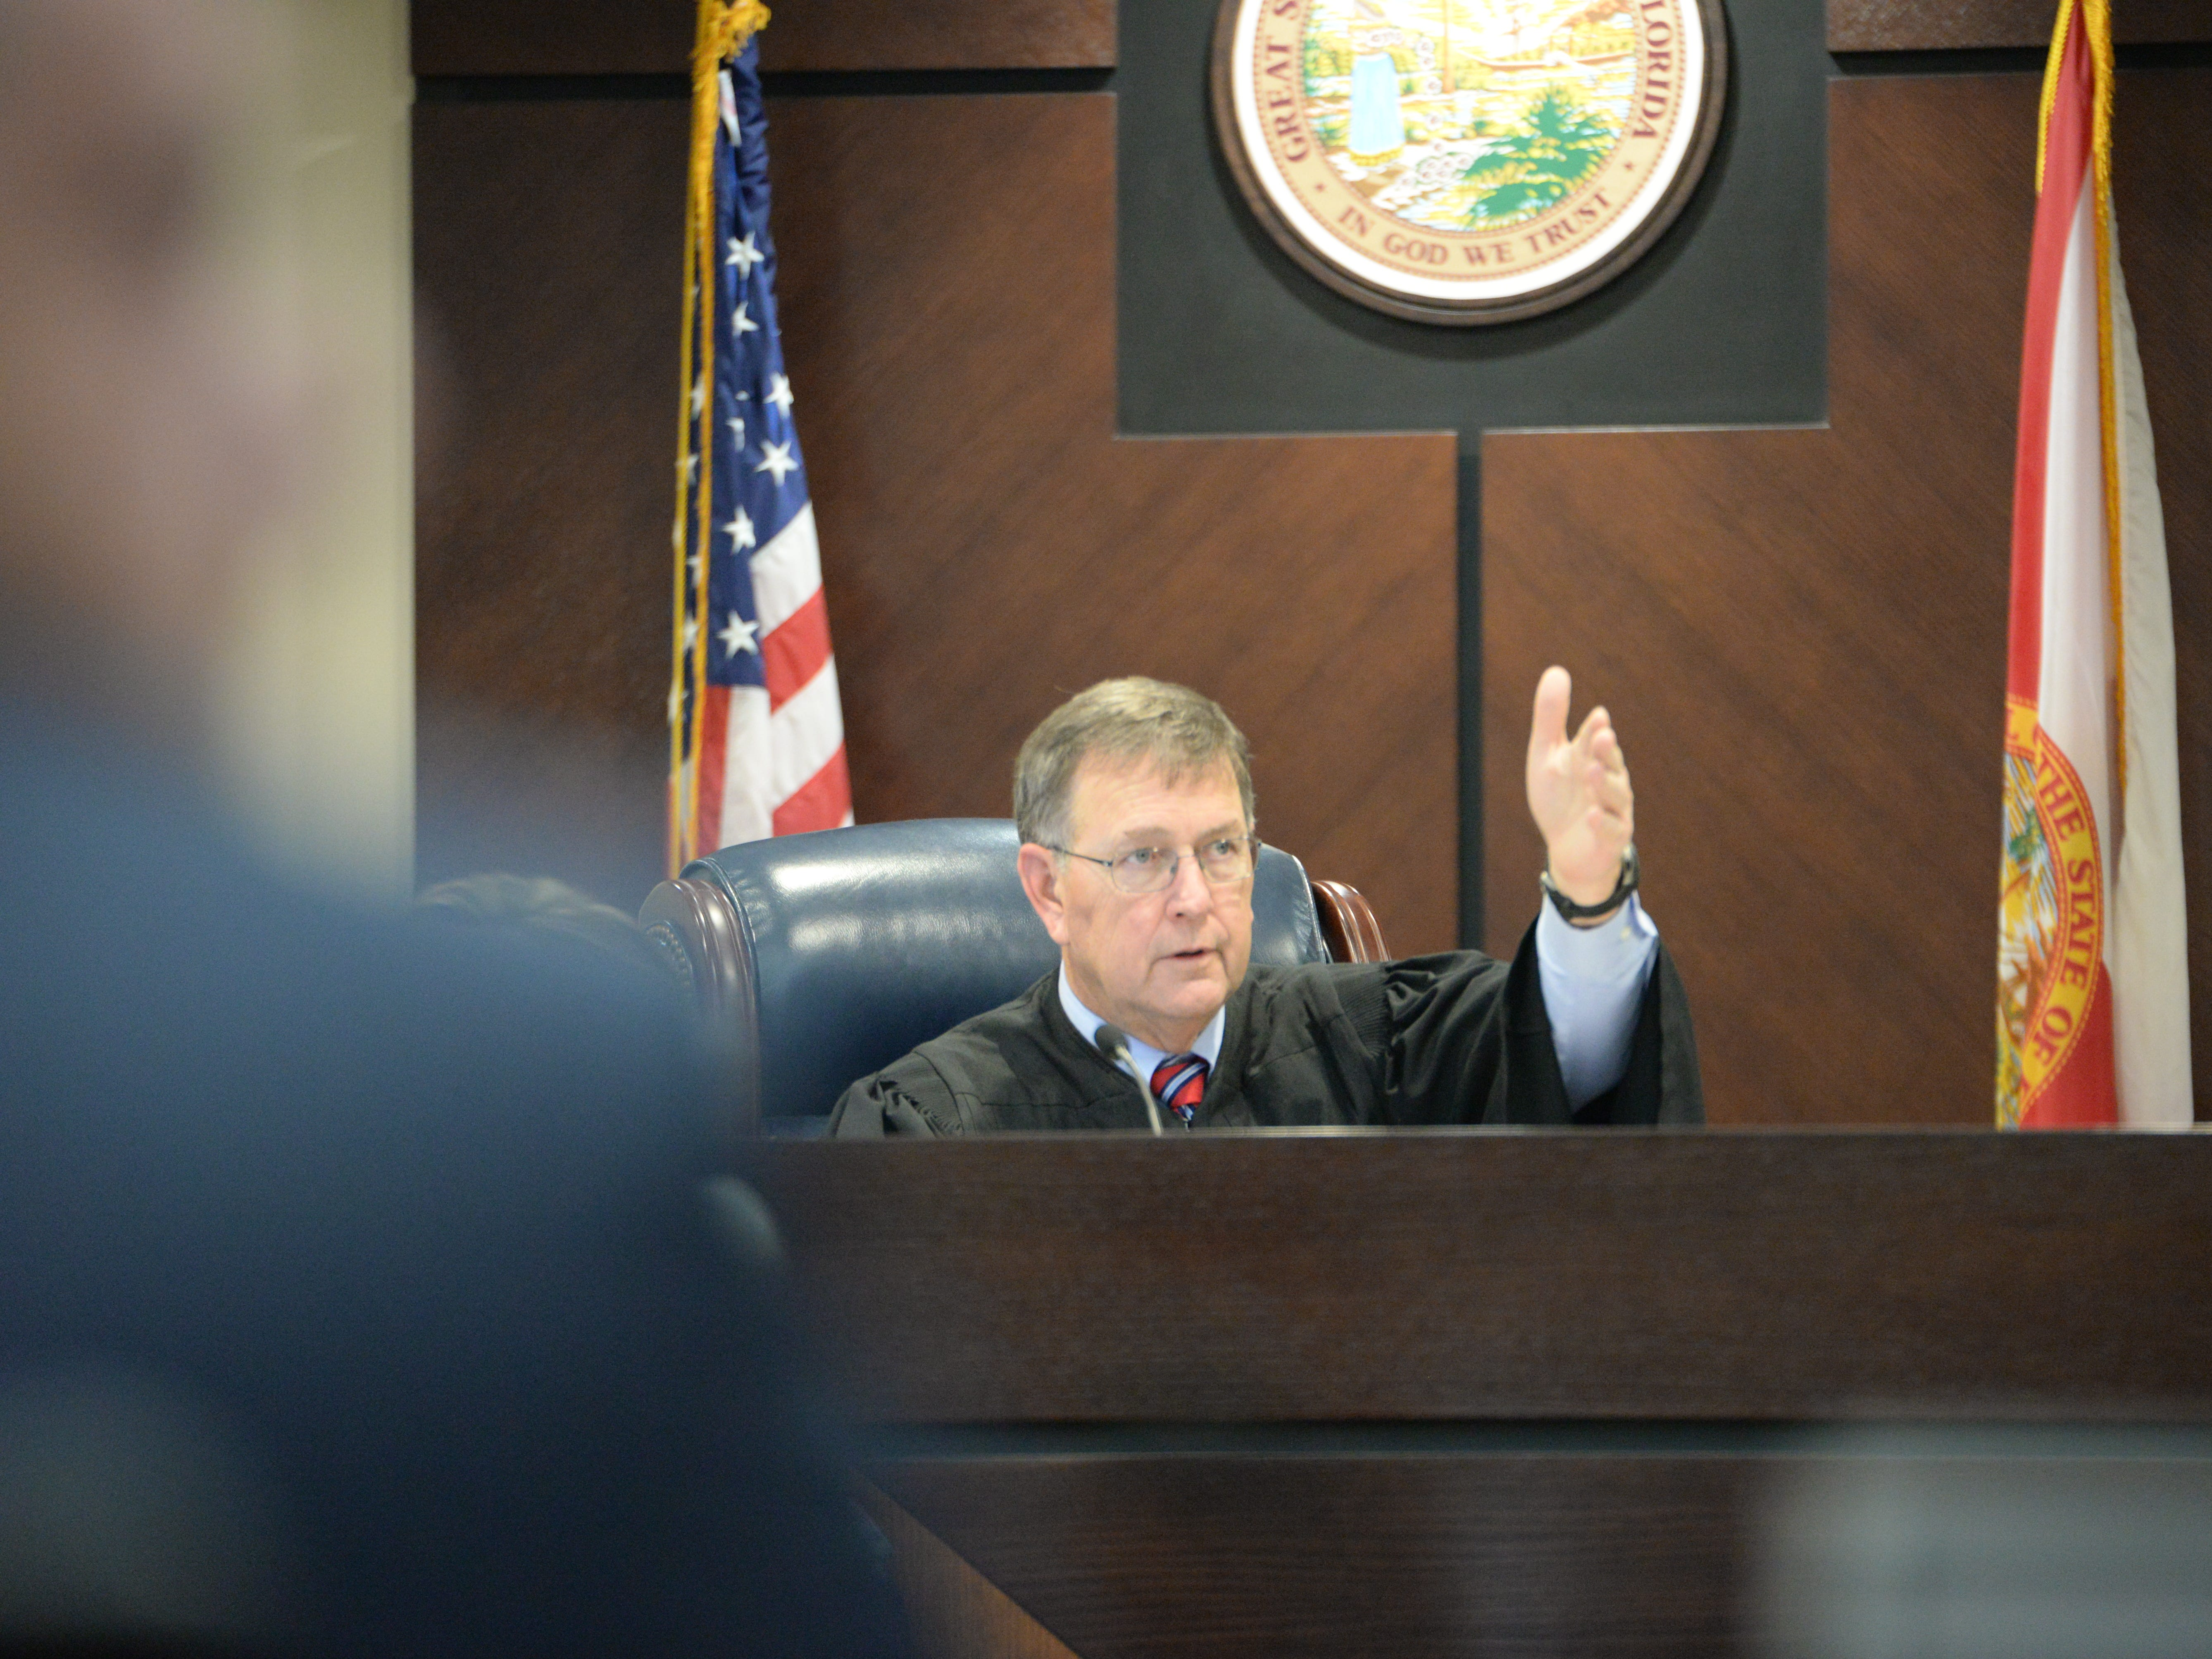 Judge James Hankinson reads the verdict, convicting Denise Williams for the murder of her husband Mike Williams at the Leon County Courthouse Friday, Dec. 14, 2018.